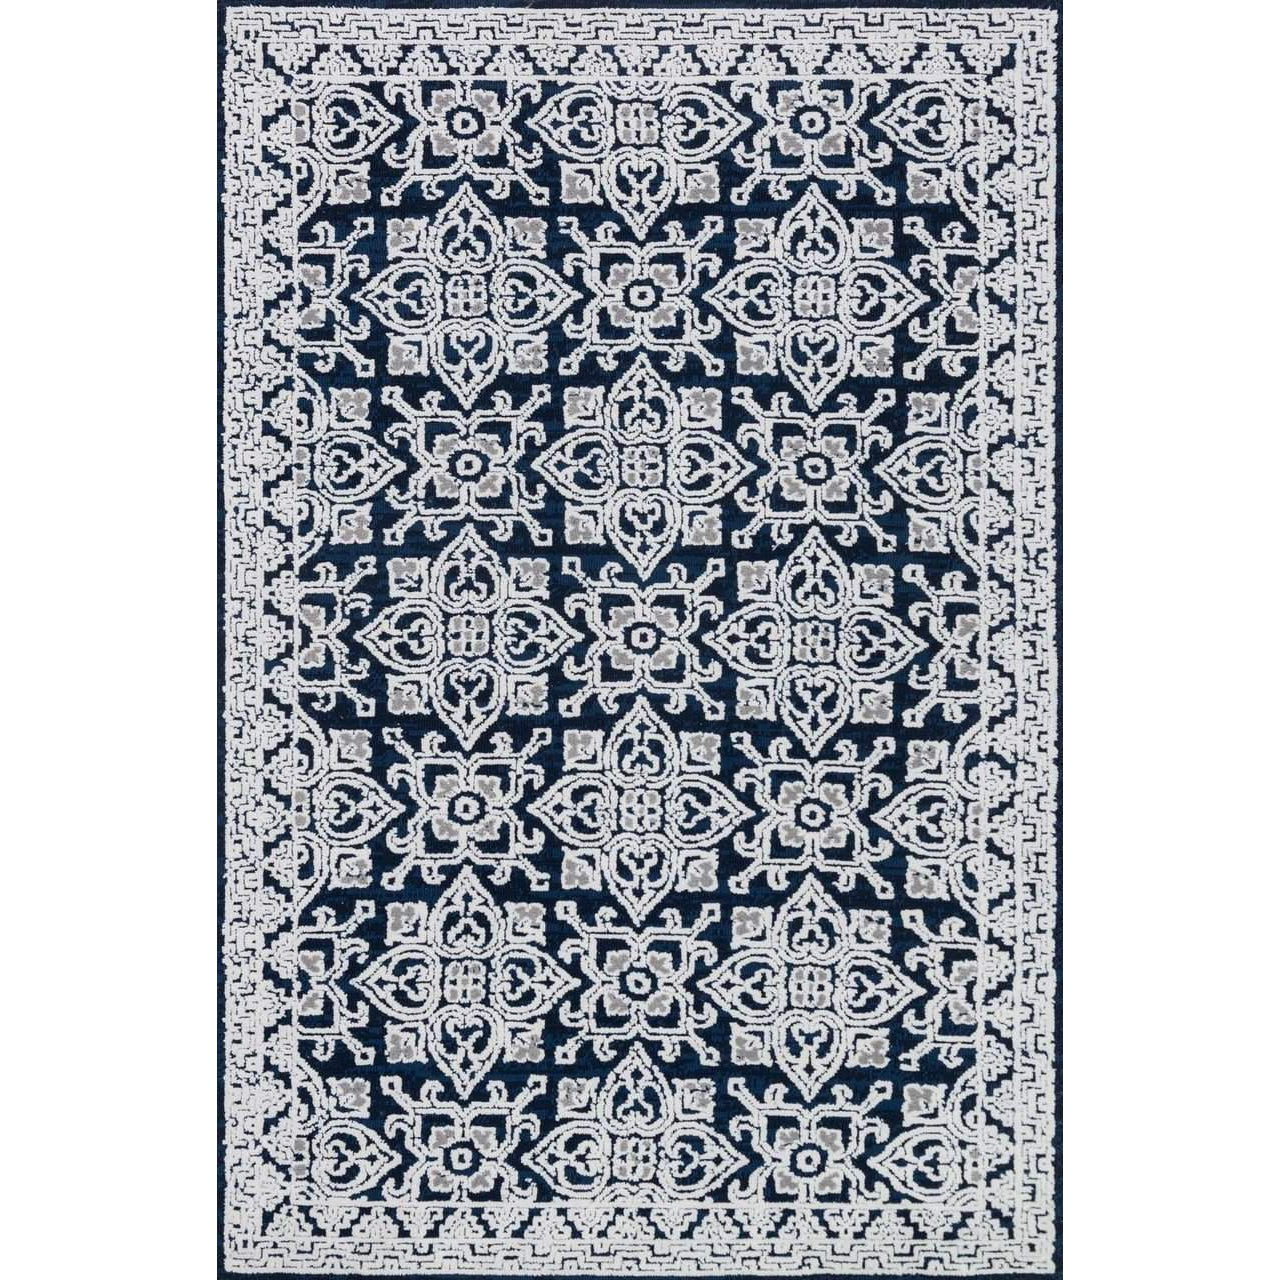 Joanna Gaines Of Magnolia Home Lotus Rug Collection - Midnight / Silver